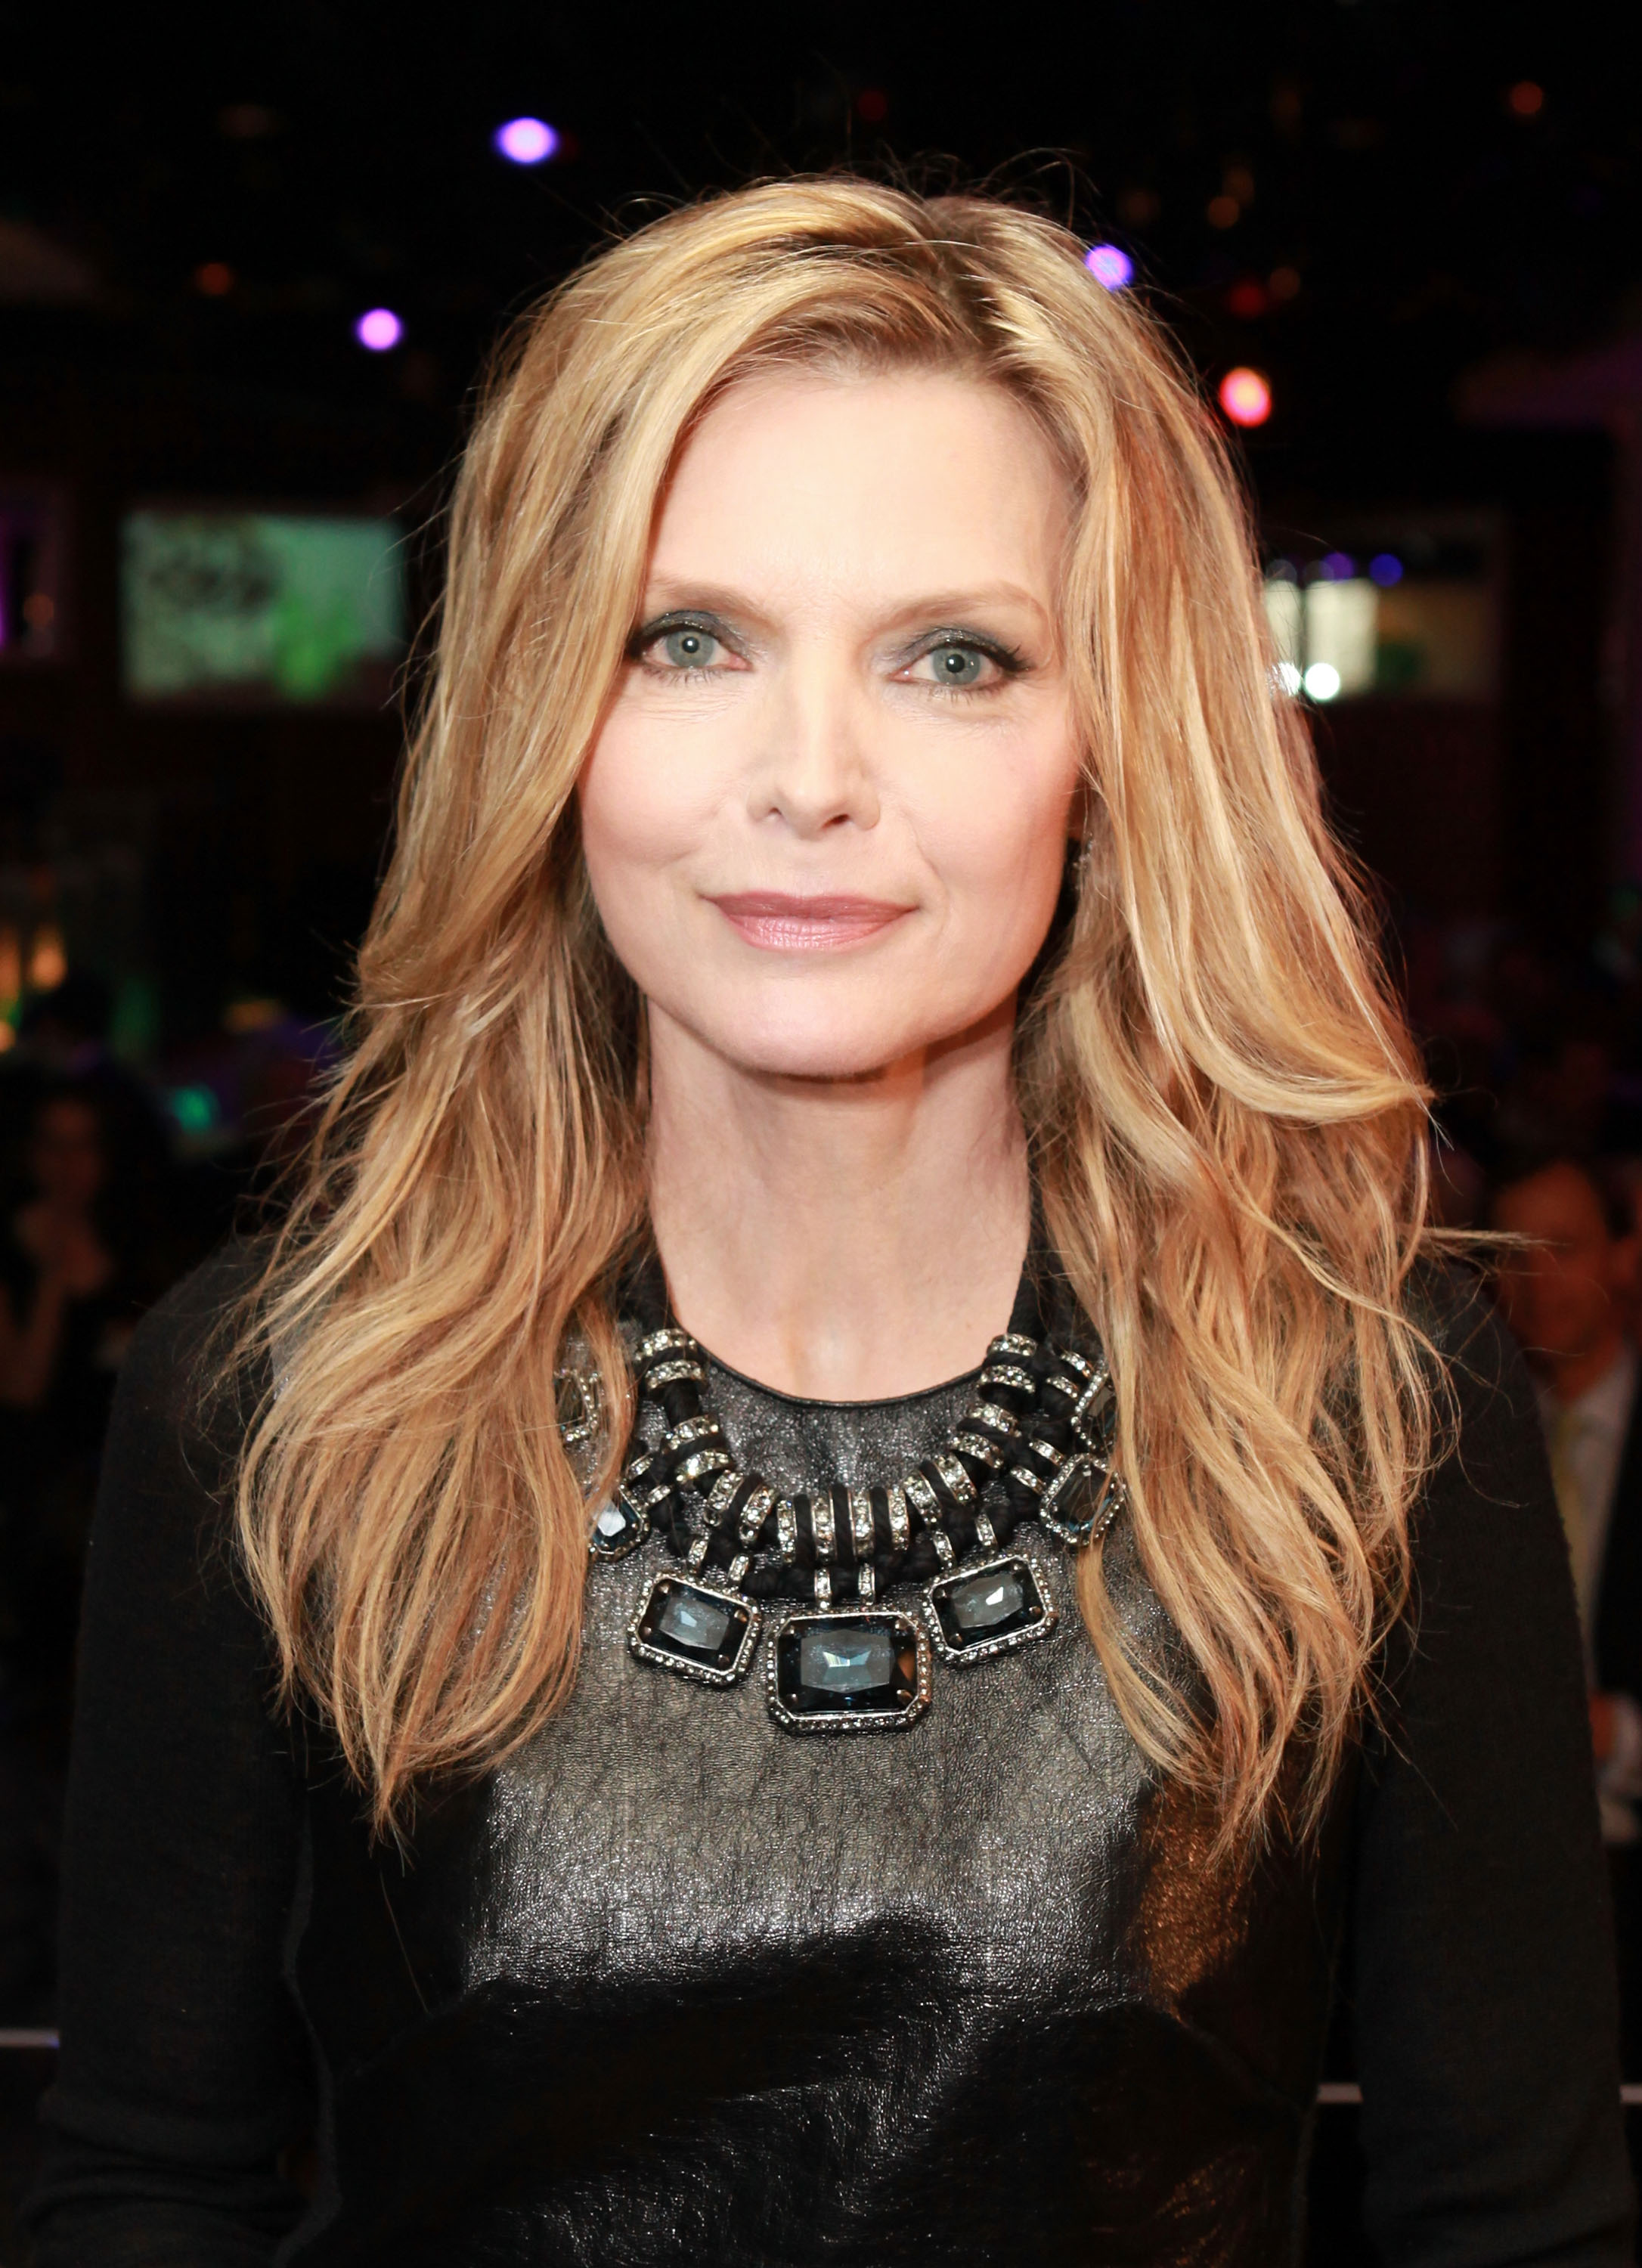 LAS VEGAS, NV - APRIL 26: Actress Michelle Pfeiffer, recipient of the Cinema Icon Award, attends the CinemaCon awards ceremony at the Pure Nightclub at Caesars Palace during CinemaCon, the official convention of the National Association of Theatre Owners, April 26, 2012 in Las Vegas, Nevada. (Photo by Ryan Miller/Getty Images)